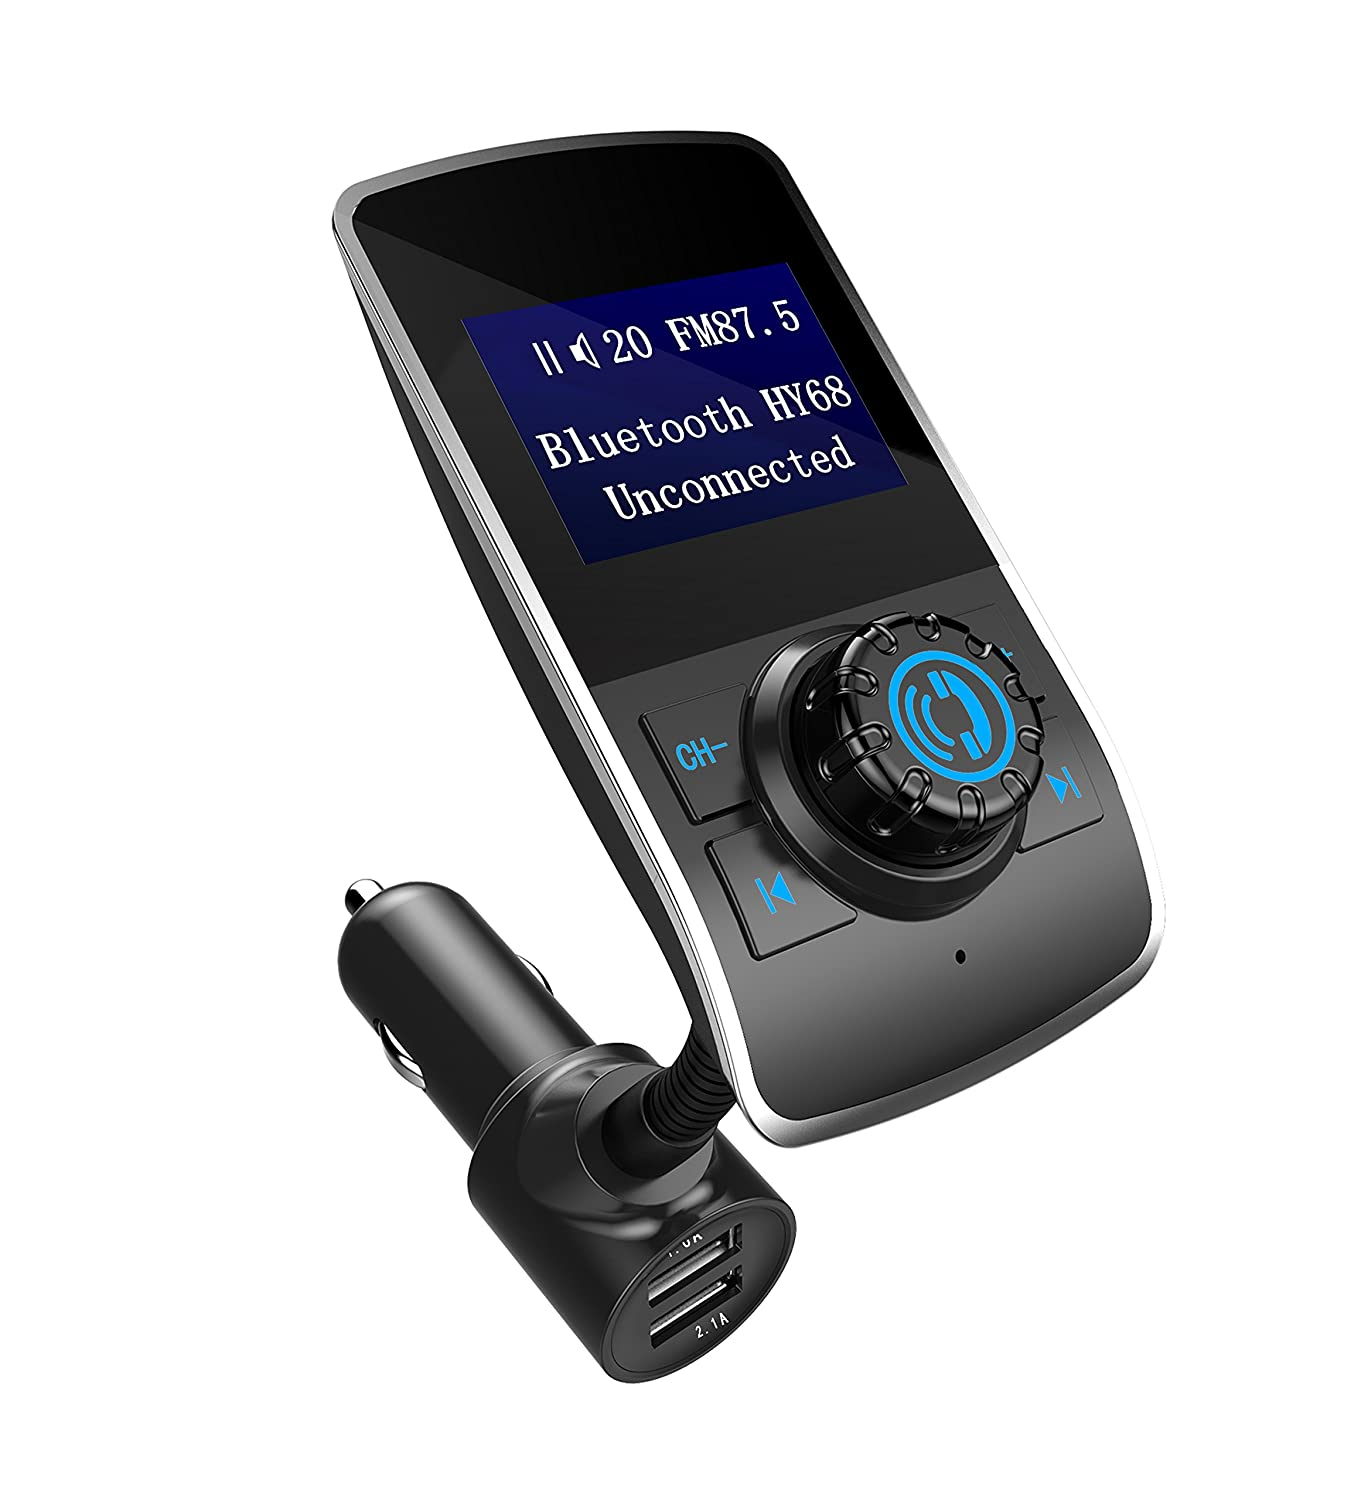 Bluetooth FM Transmitter for Car, Aigital Wireless in-Car FM Radio Adapter Car Kit MP3 Music Player Handsfree Calling, TF Card & AUX Play with Dual USB Charging Ports